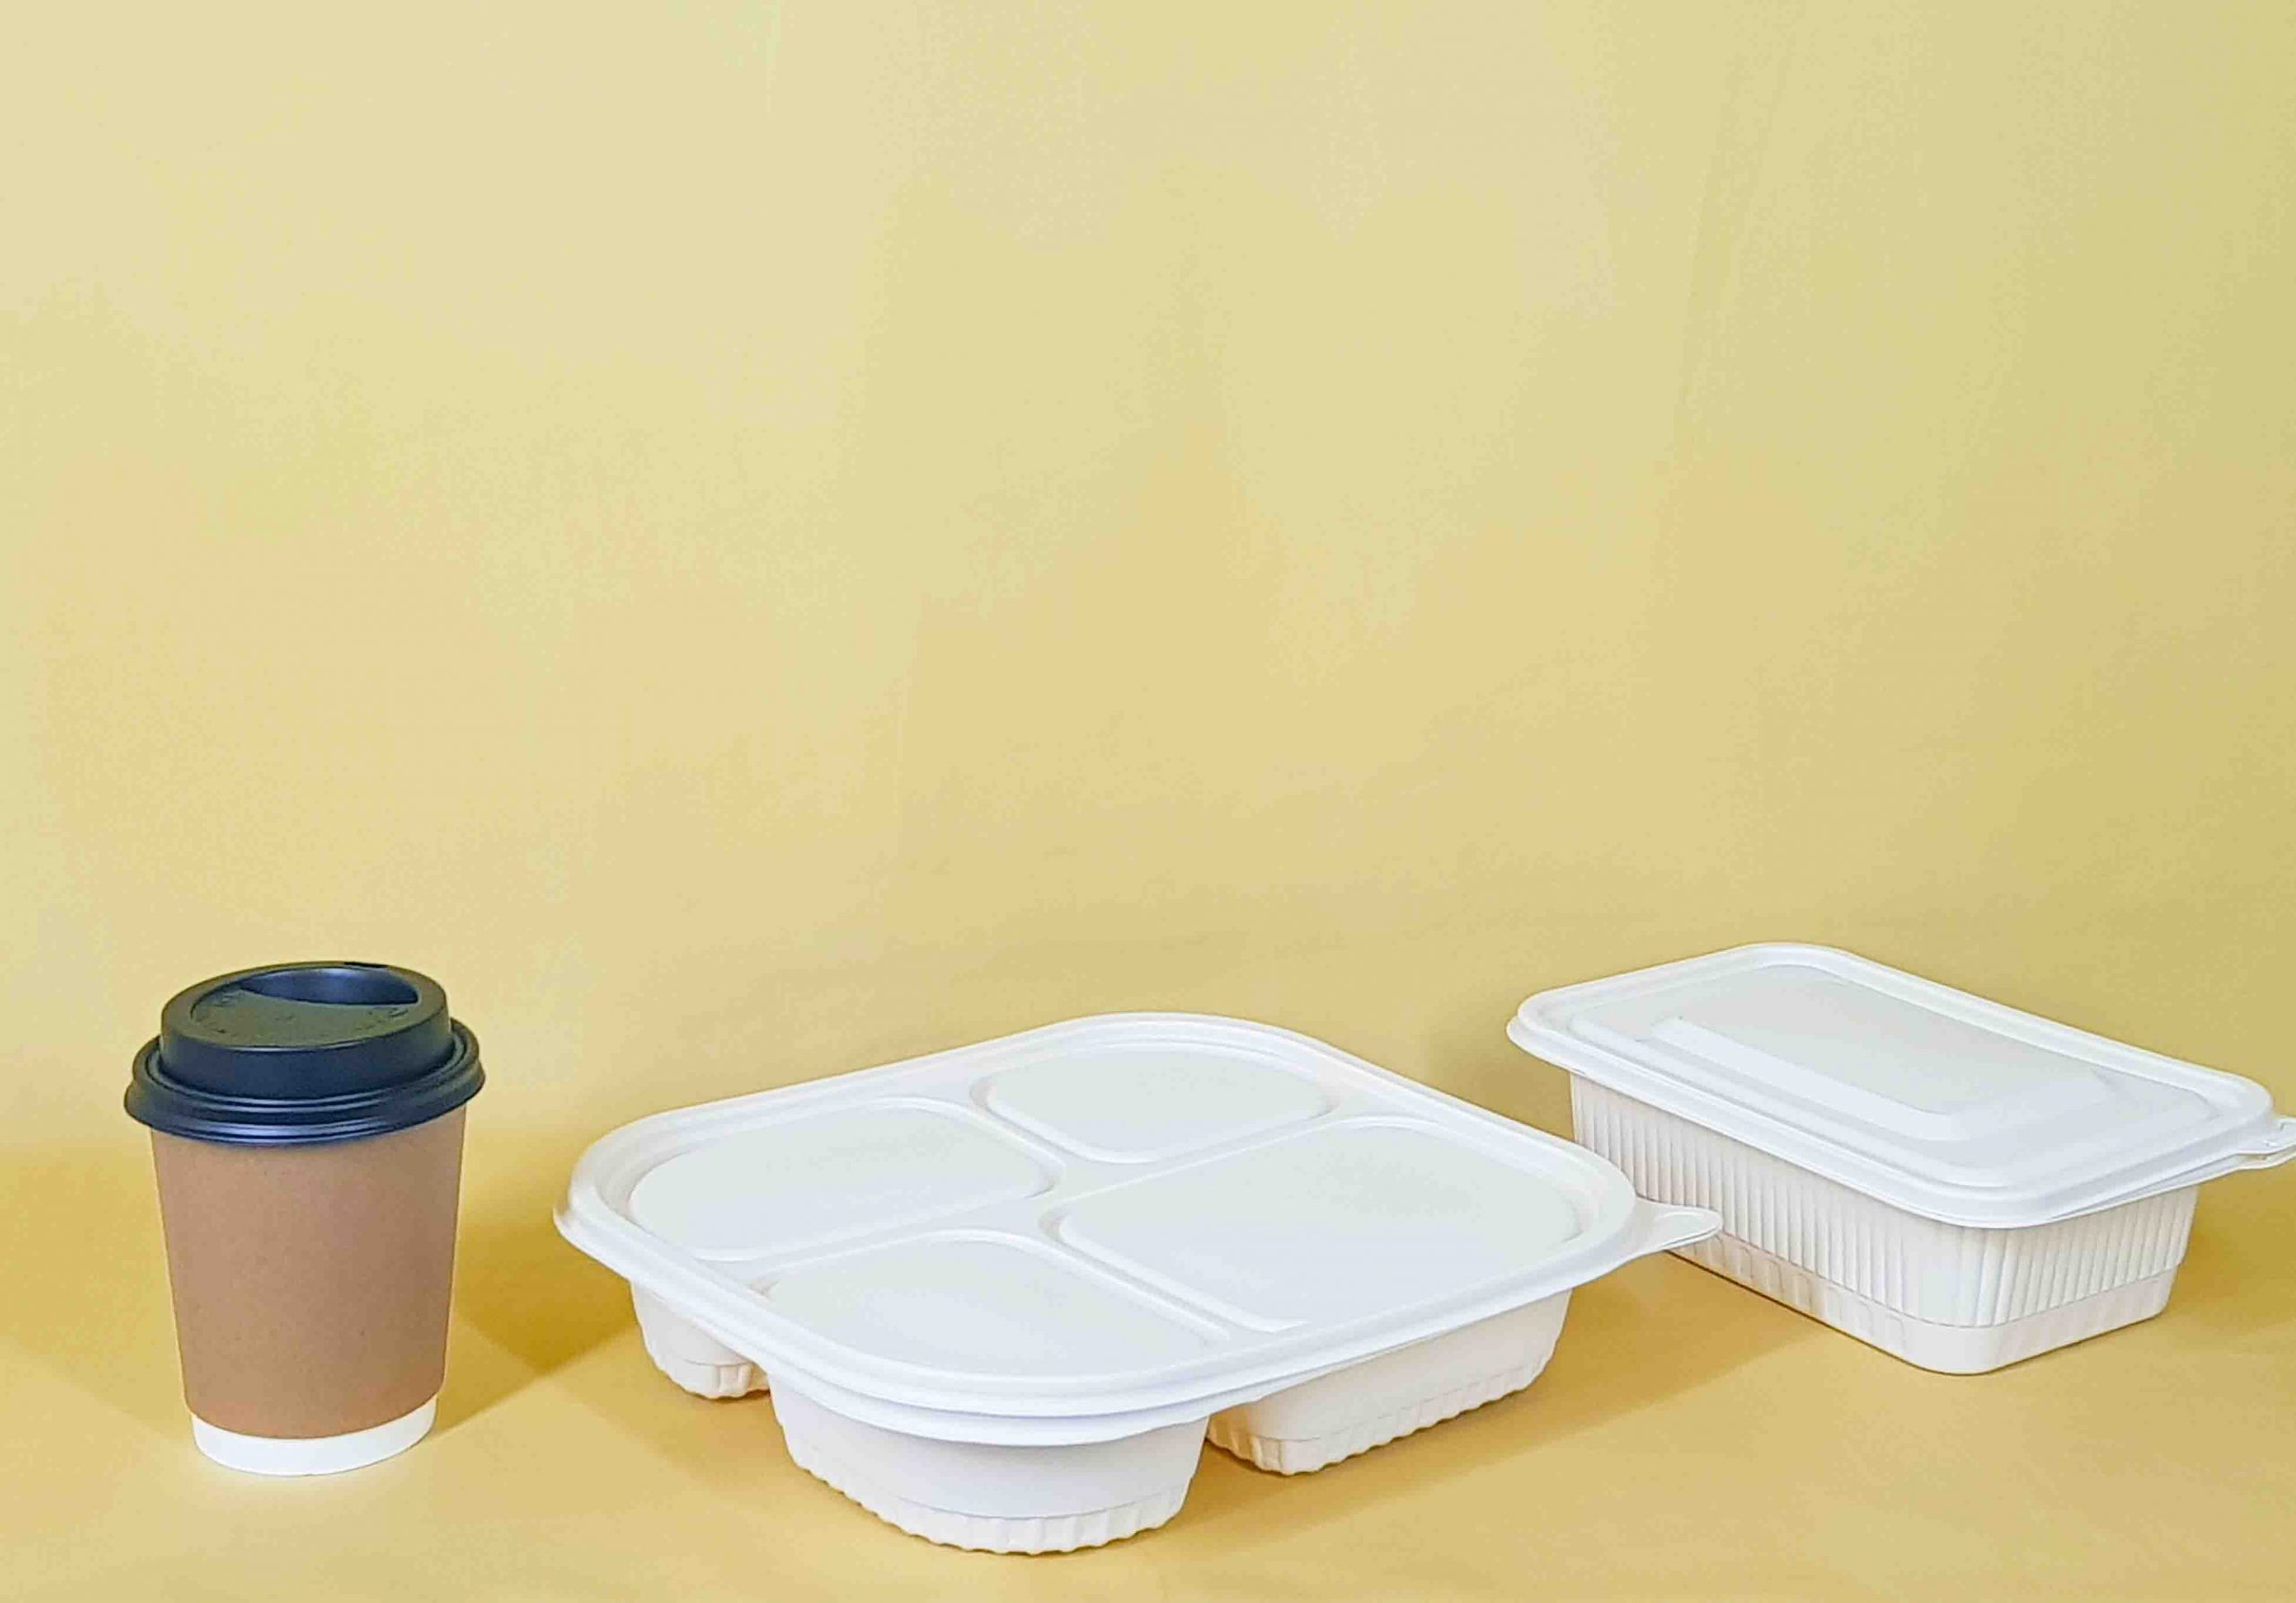 Product Packaging translation Services